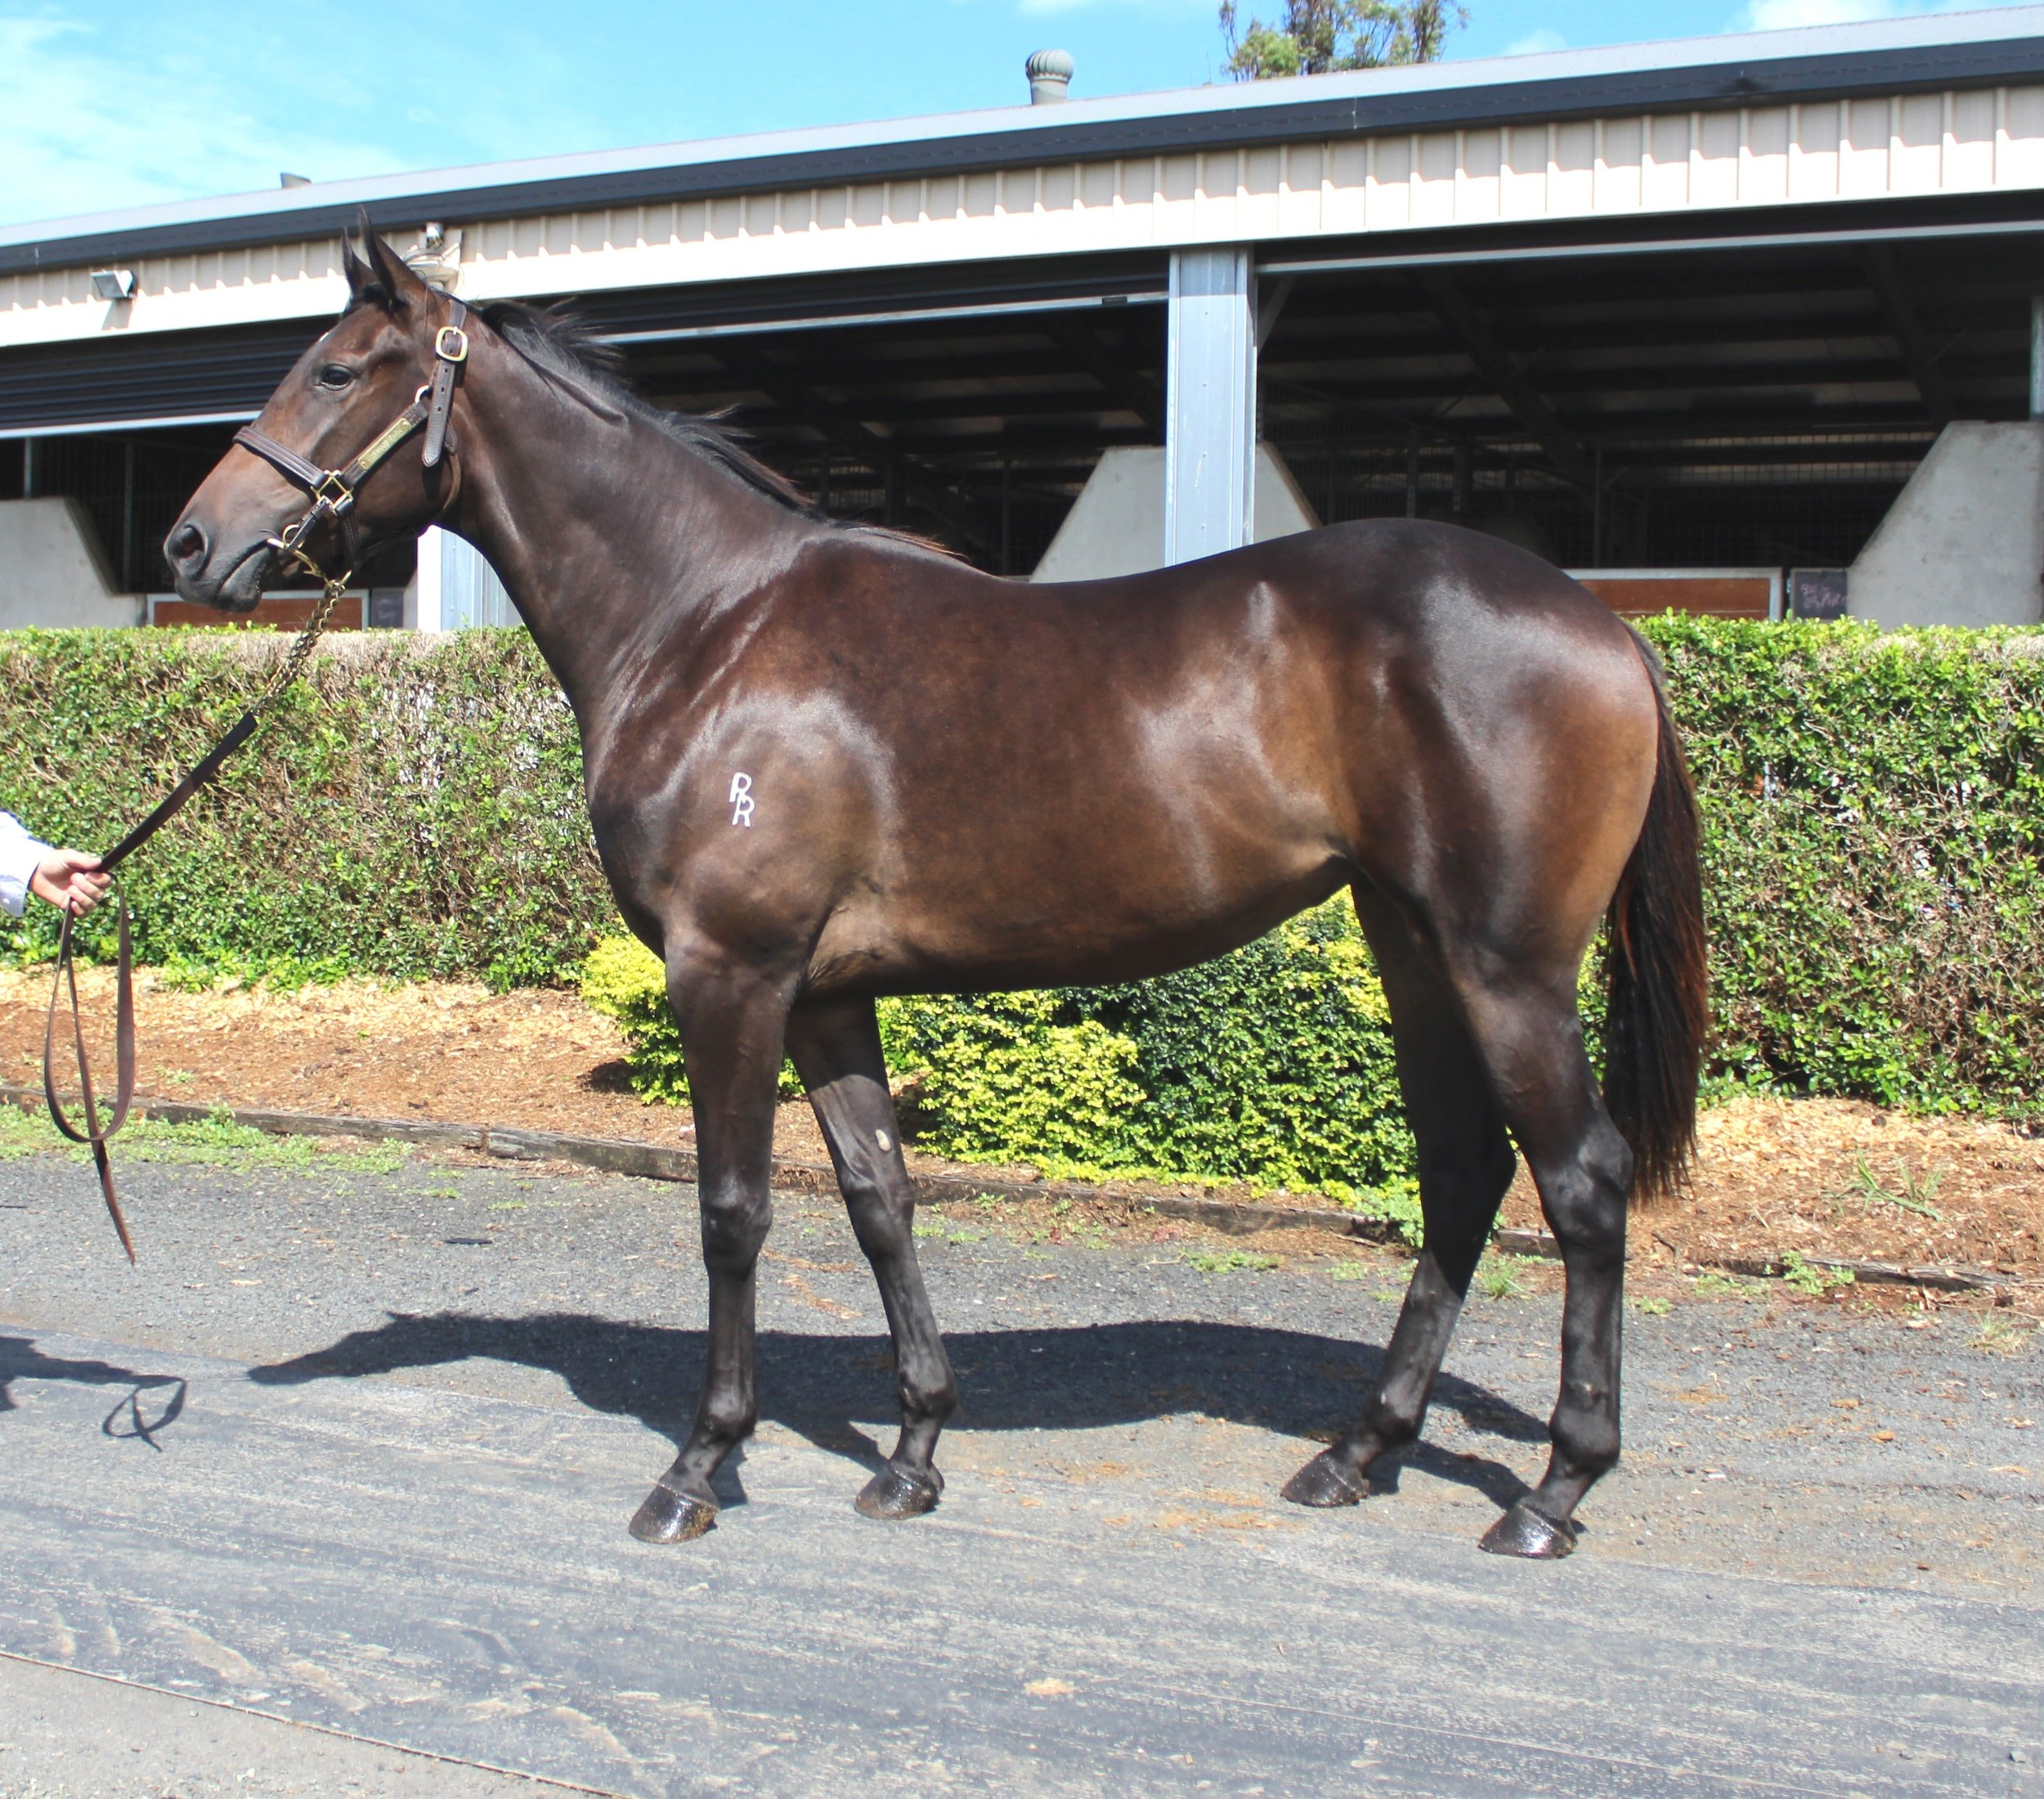 Lot 62 - So You Think x Milady Clang